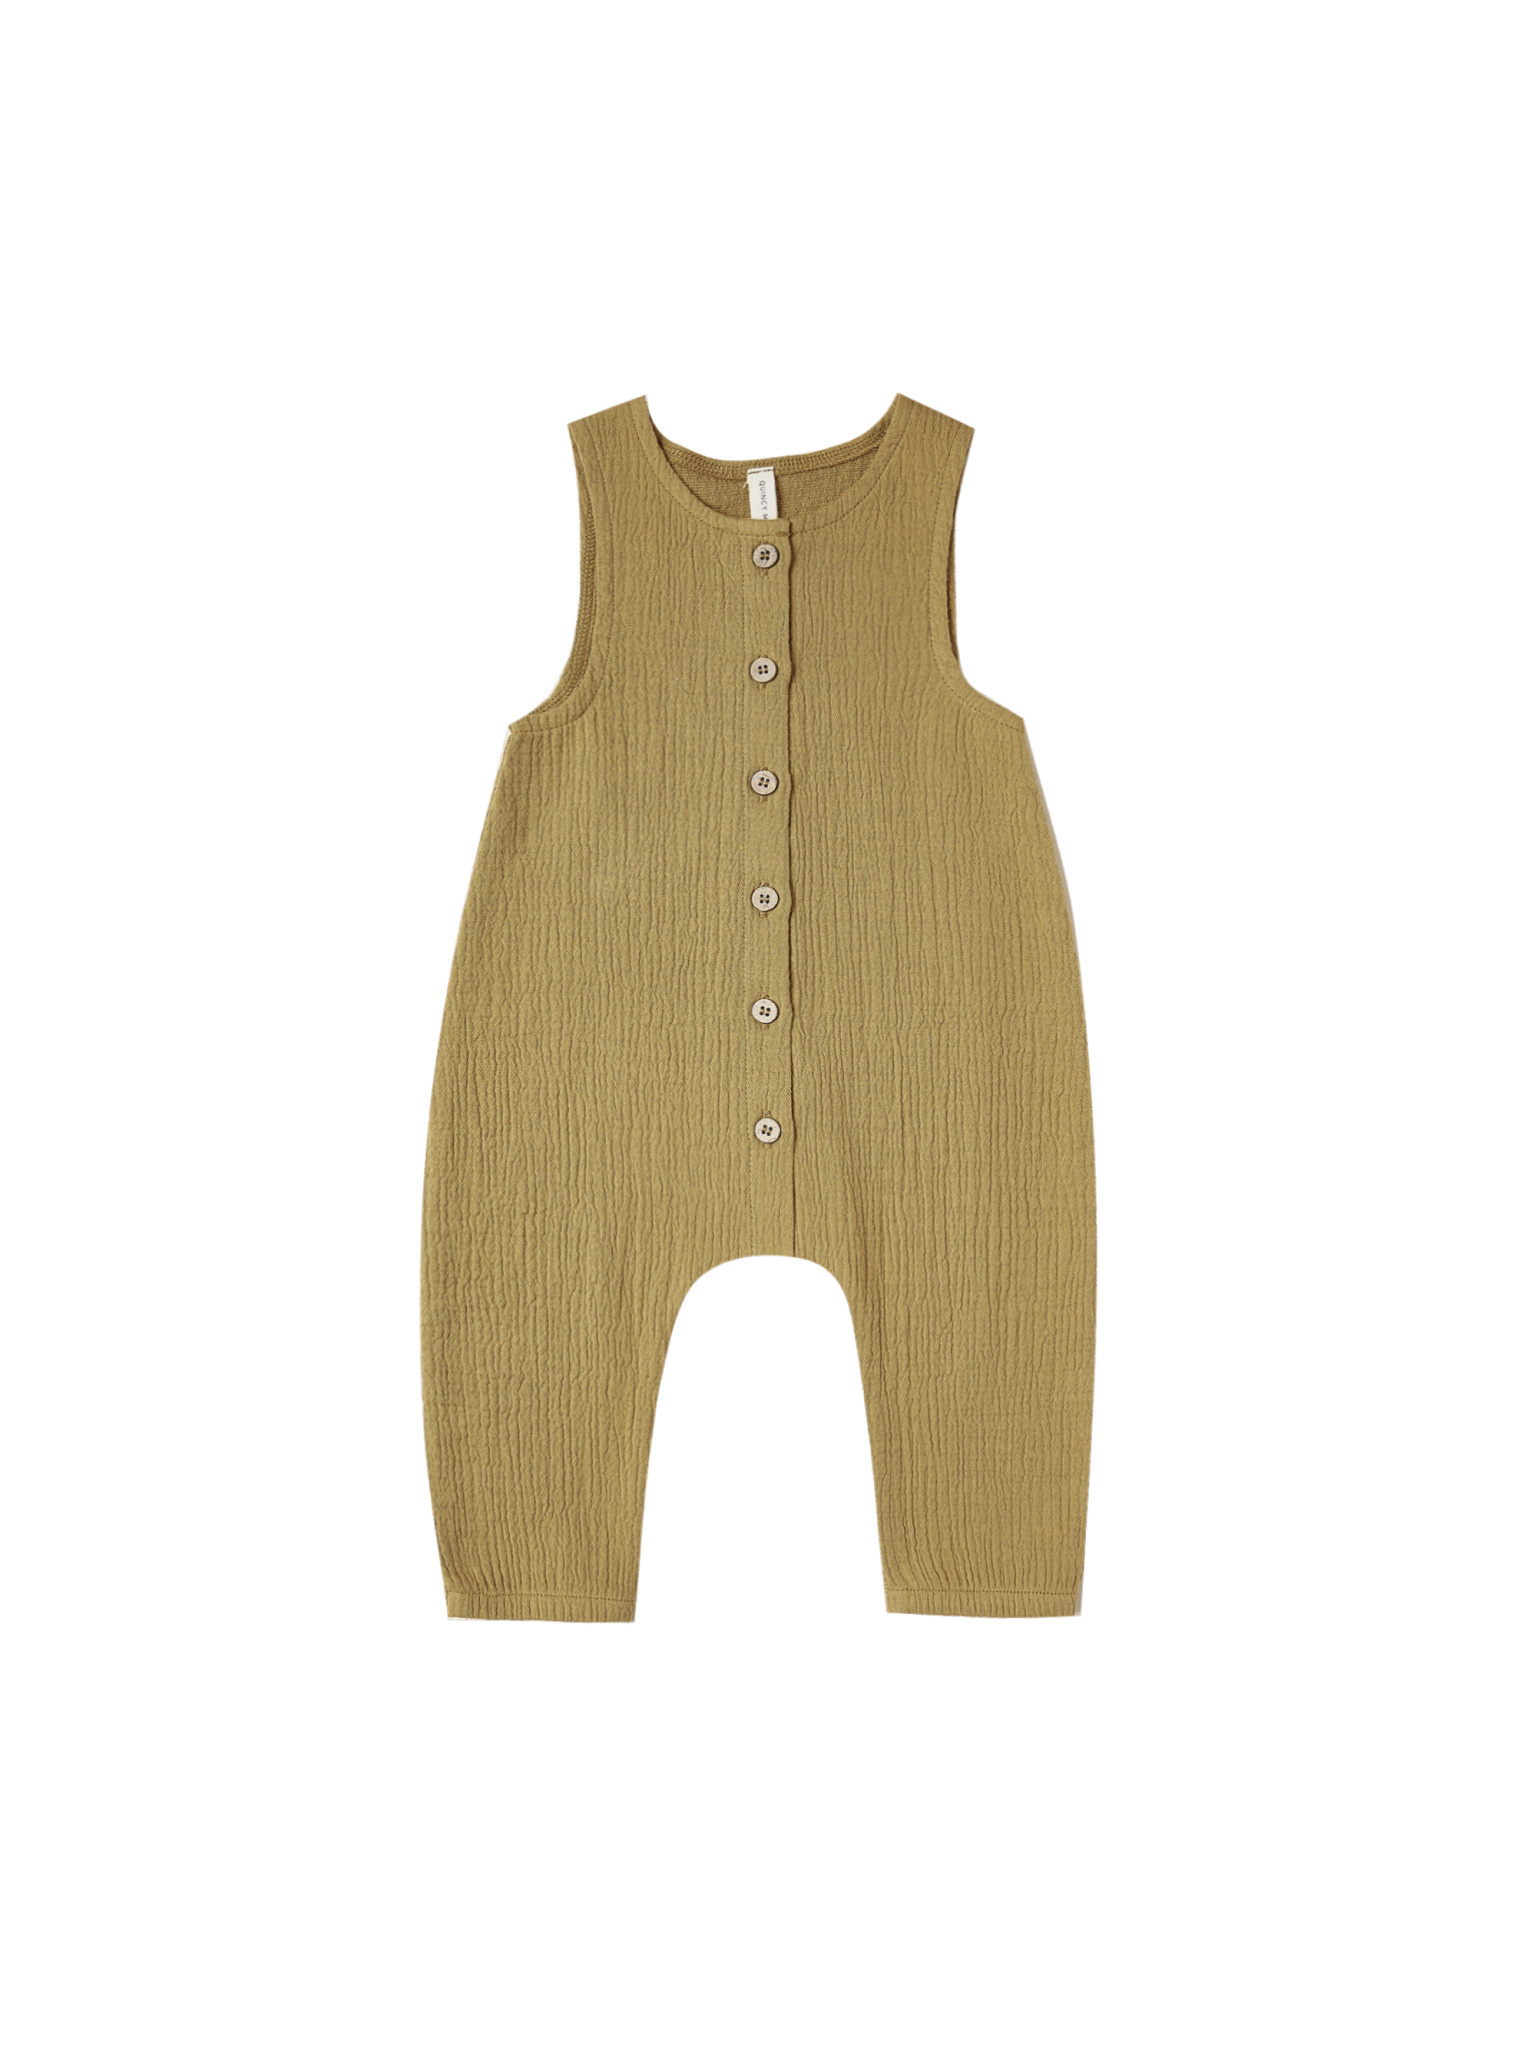 Quincy Mae Jumpsuit - Ocre